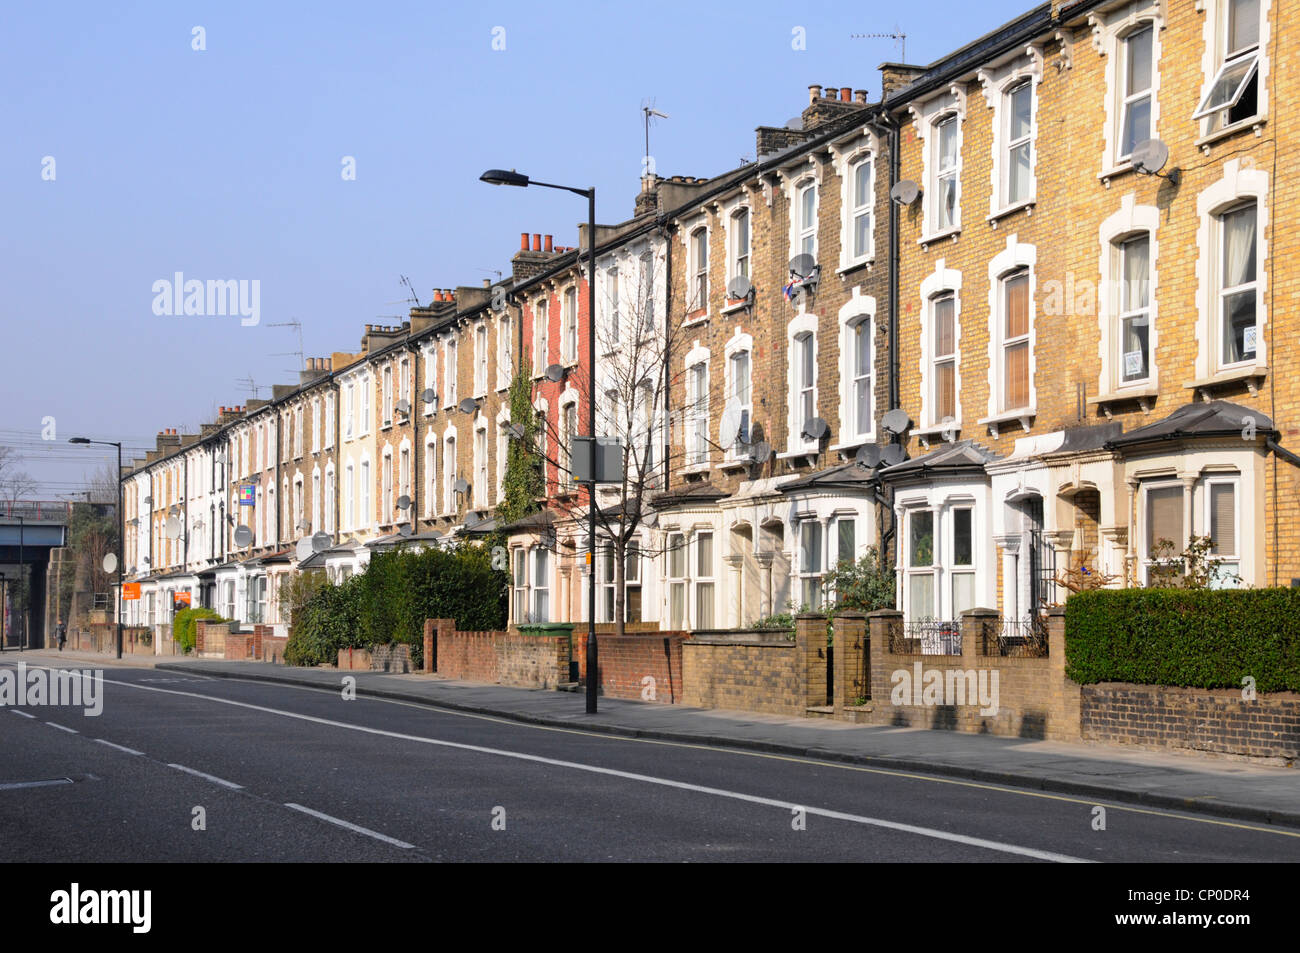 Long row of old three storey terraced flats & apartments without parked cars in Hackney London close to town - Stock Image